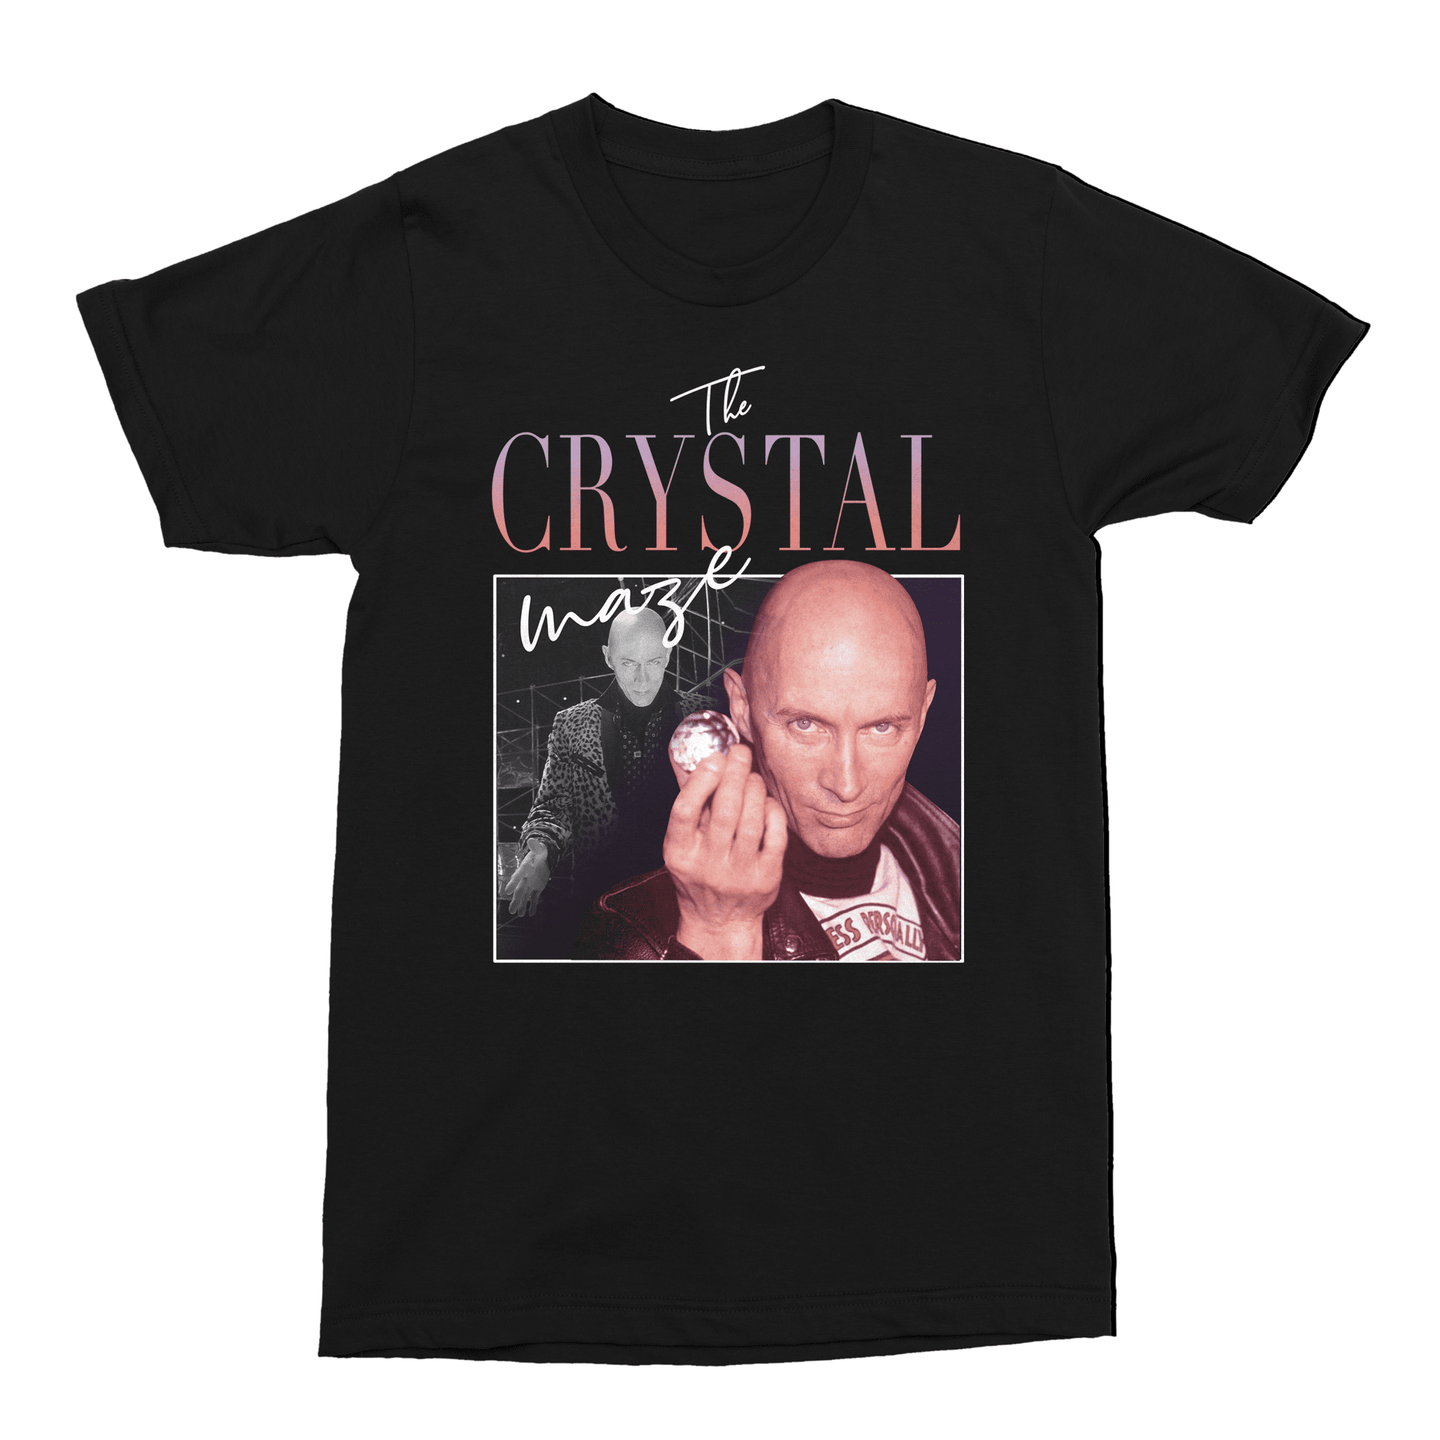 The Crystal Maze Richard O'Brien 90s TV Unisex Vintage Throwback T-Shirt - Timeless Tees